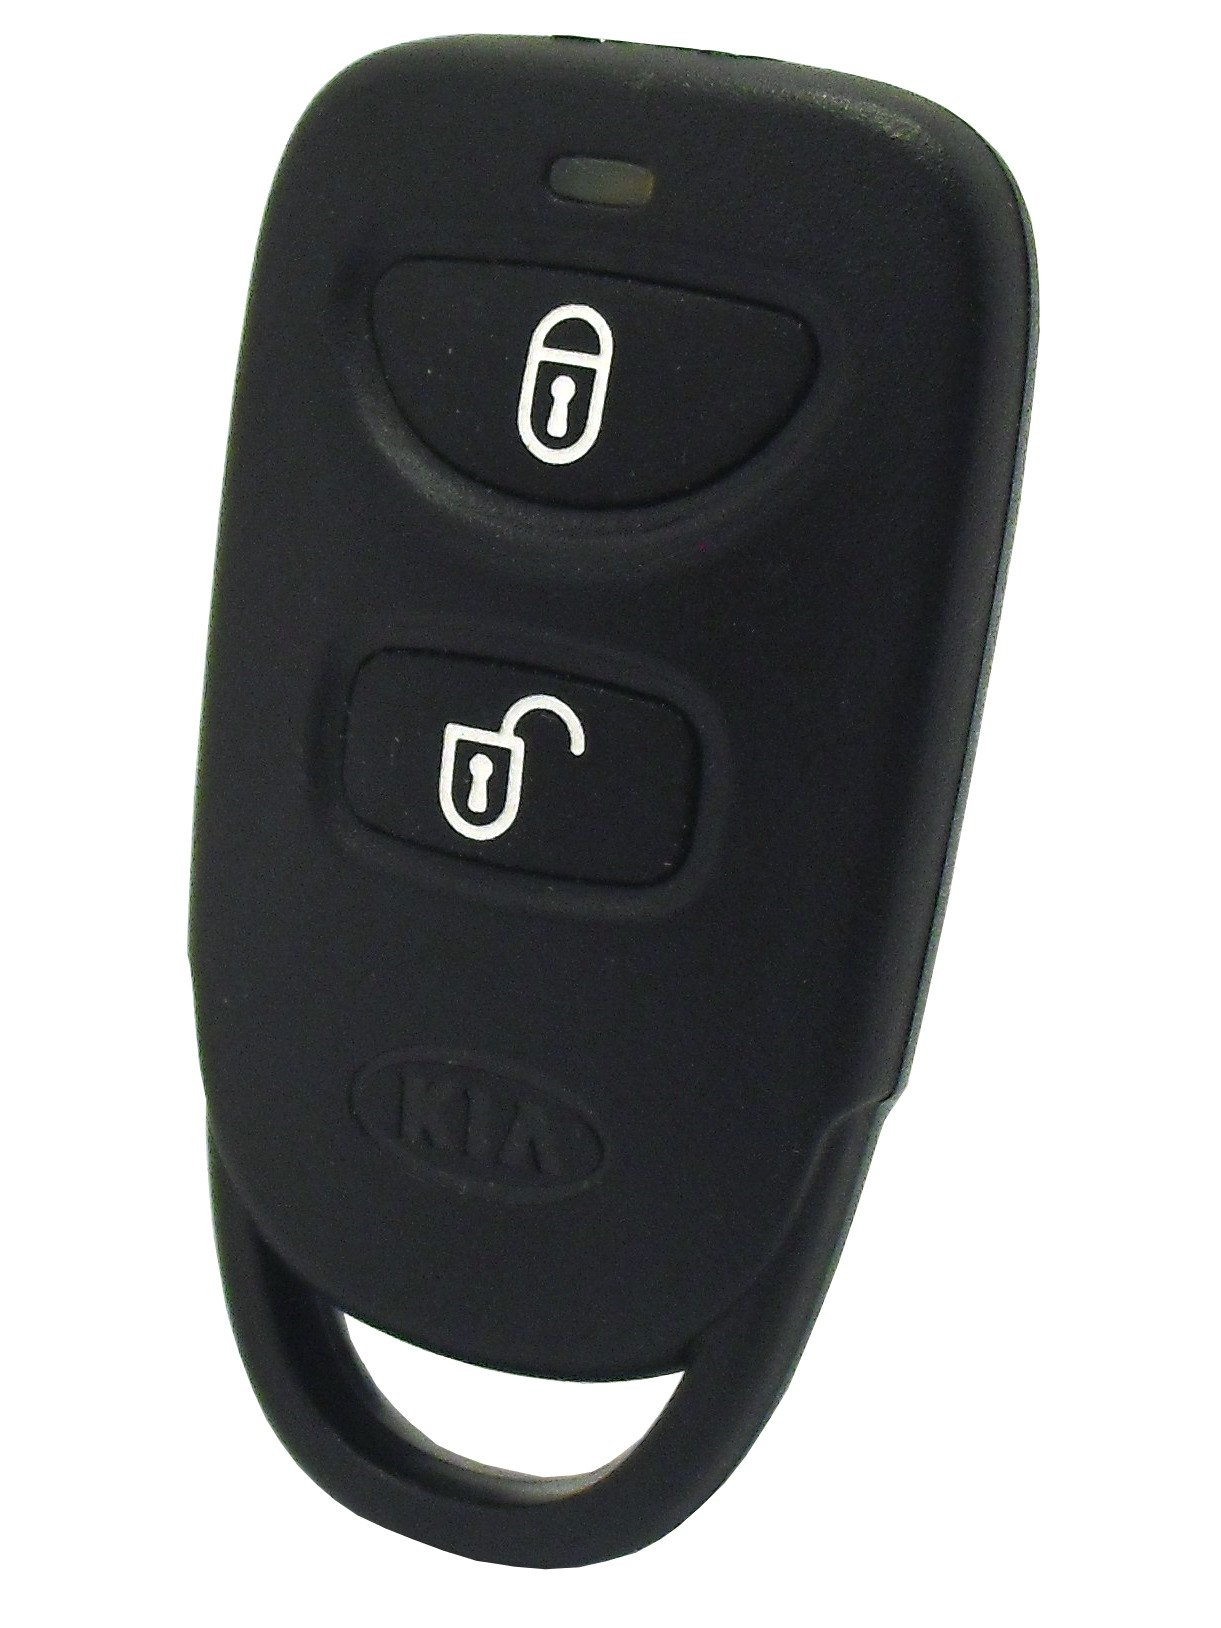 Kia Keyless Entry Remote - 3 button